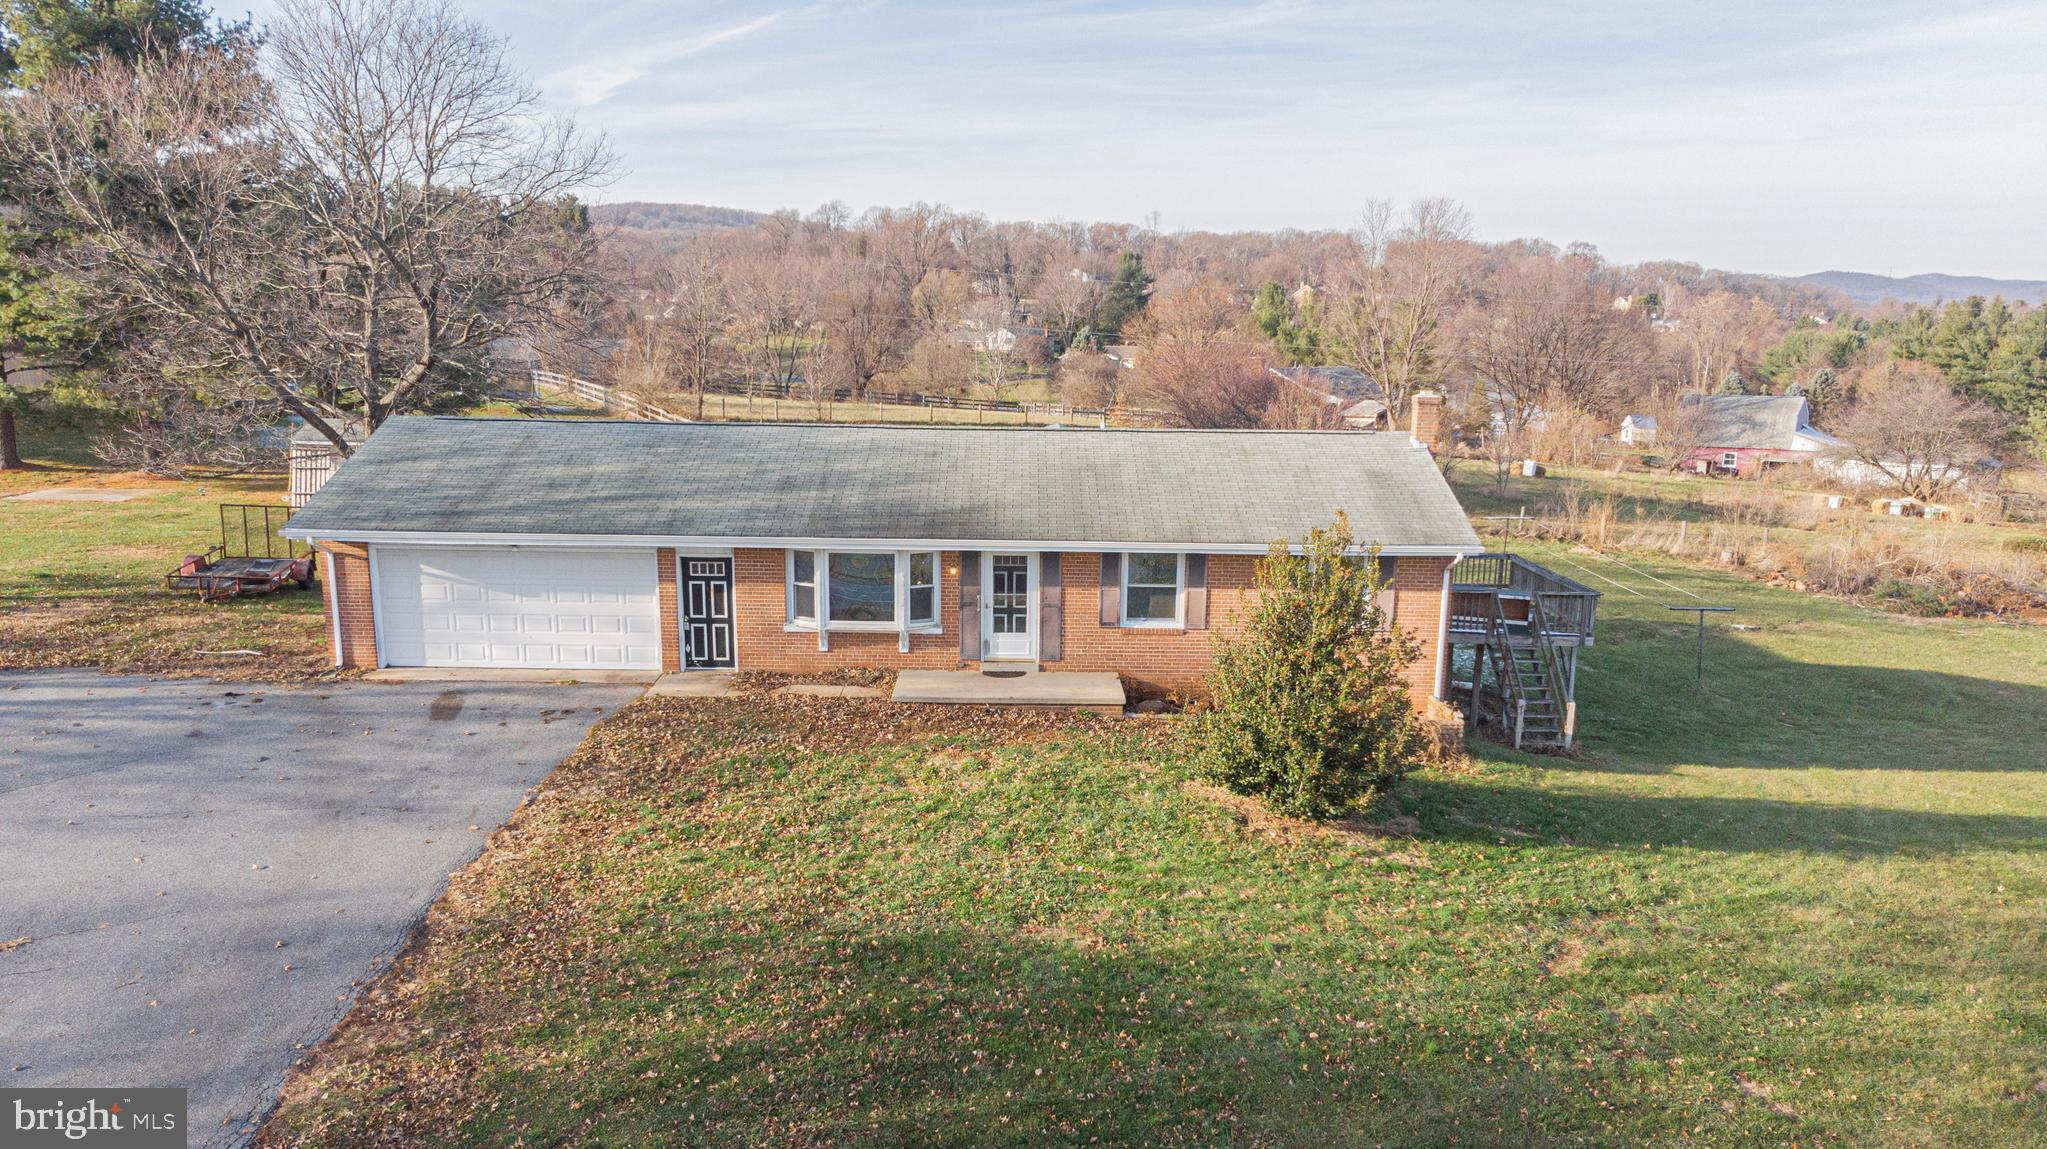 Beautifully located brick ranch with scenic views of Sugarloaf Mountain, just minutes to everything.